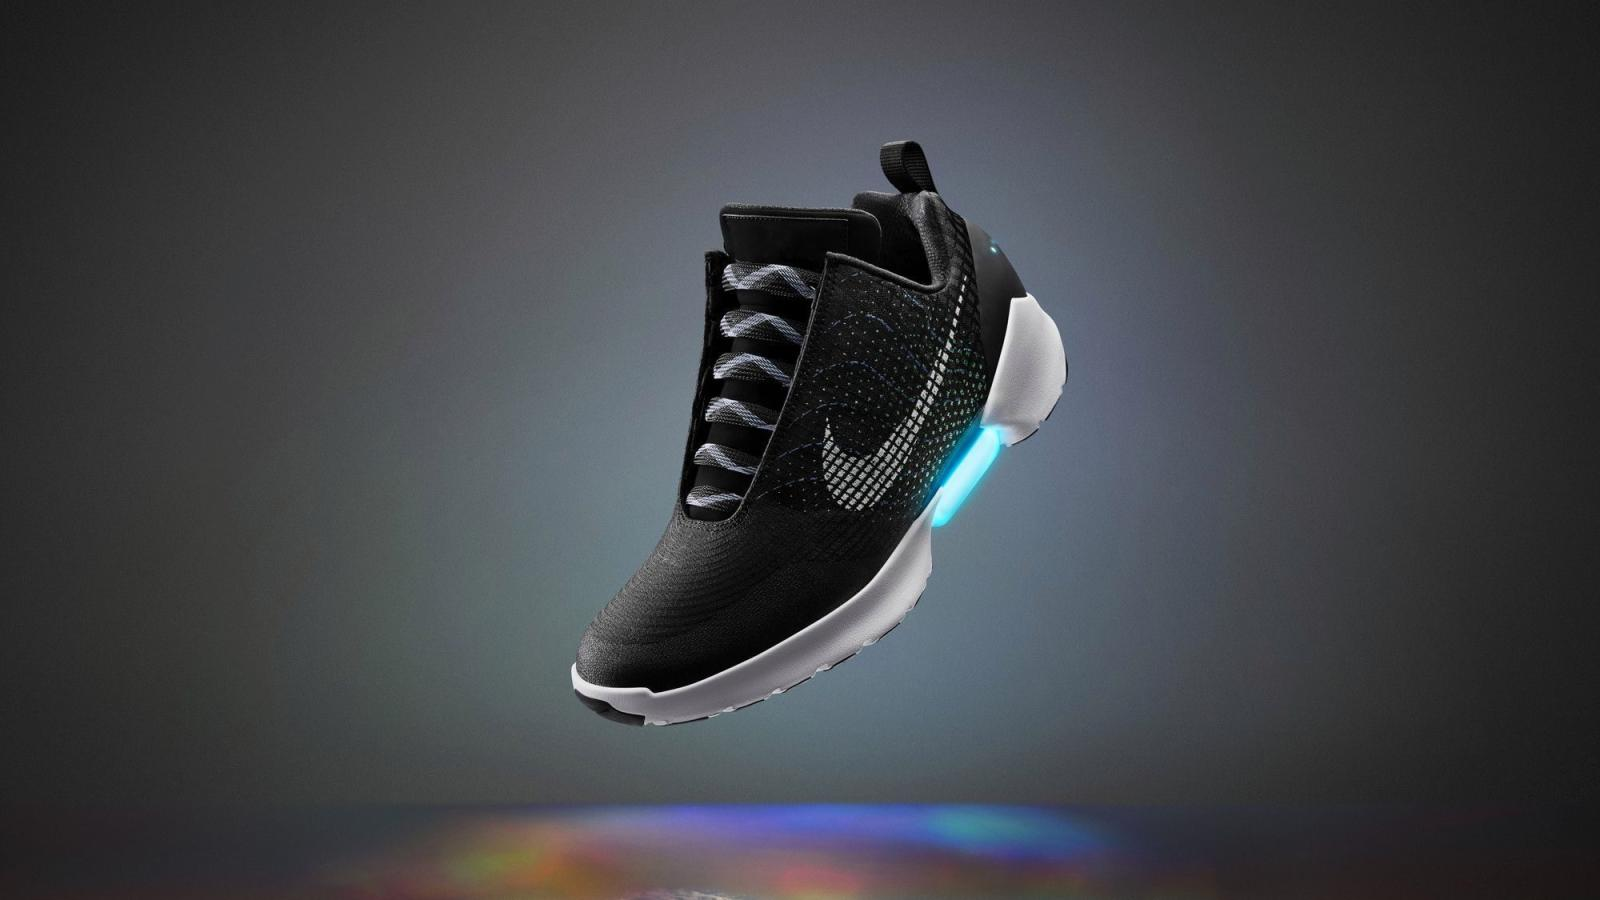 Rocío diferencia ensayo  How Nike's HyperAdapt and Mag self-lacing sneakers were created — Quartz